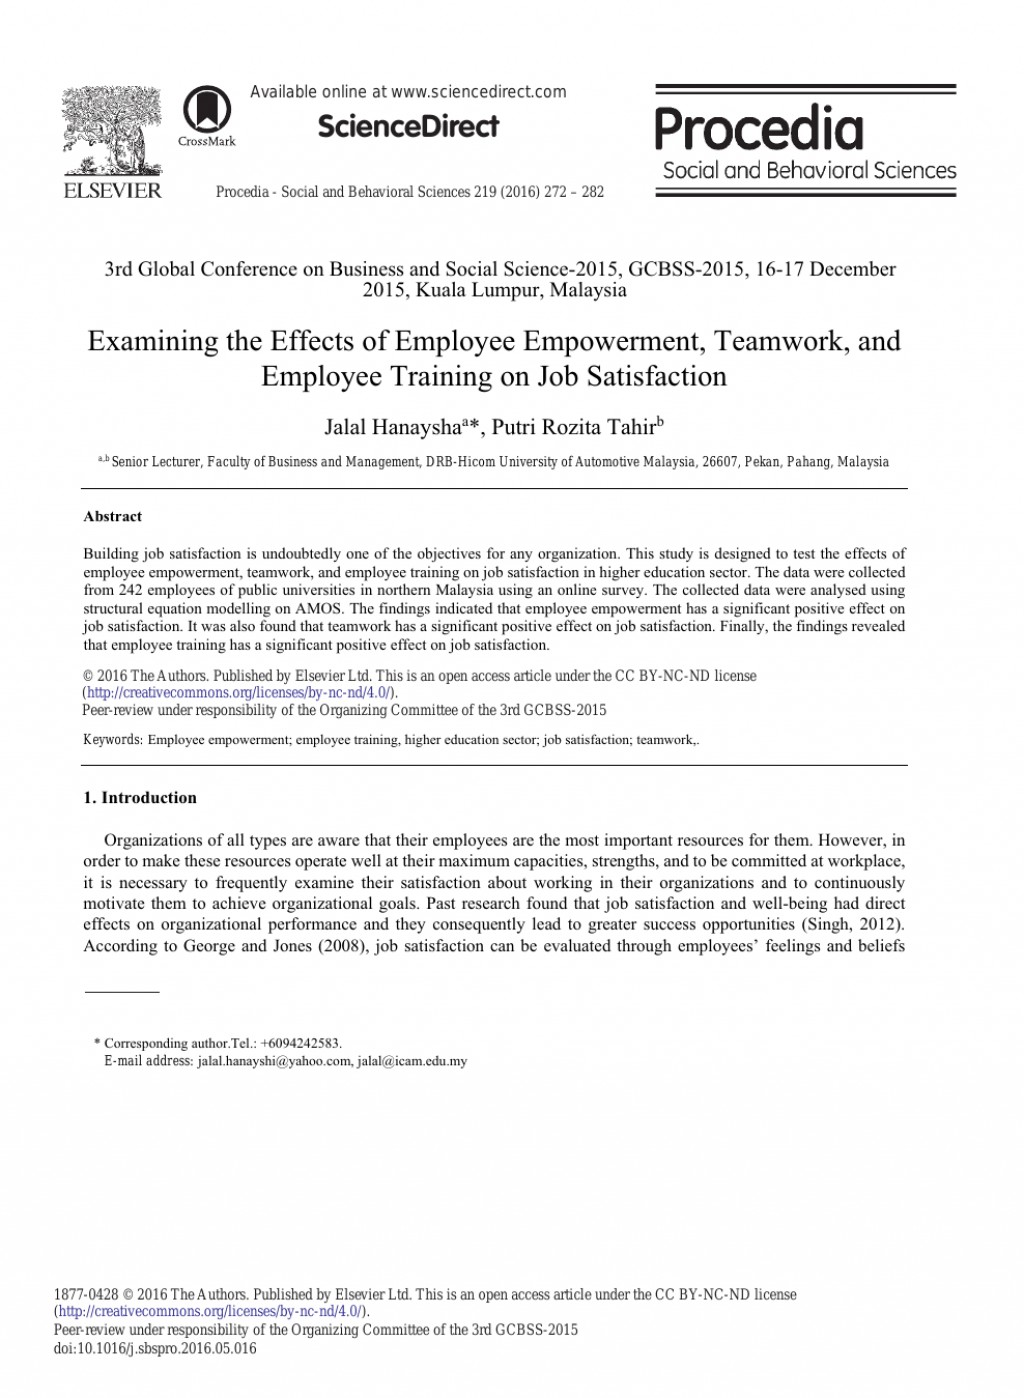 005 Abstract For Research Paper On Job Satisfaction Awesome Large